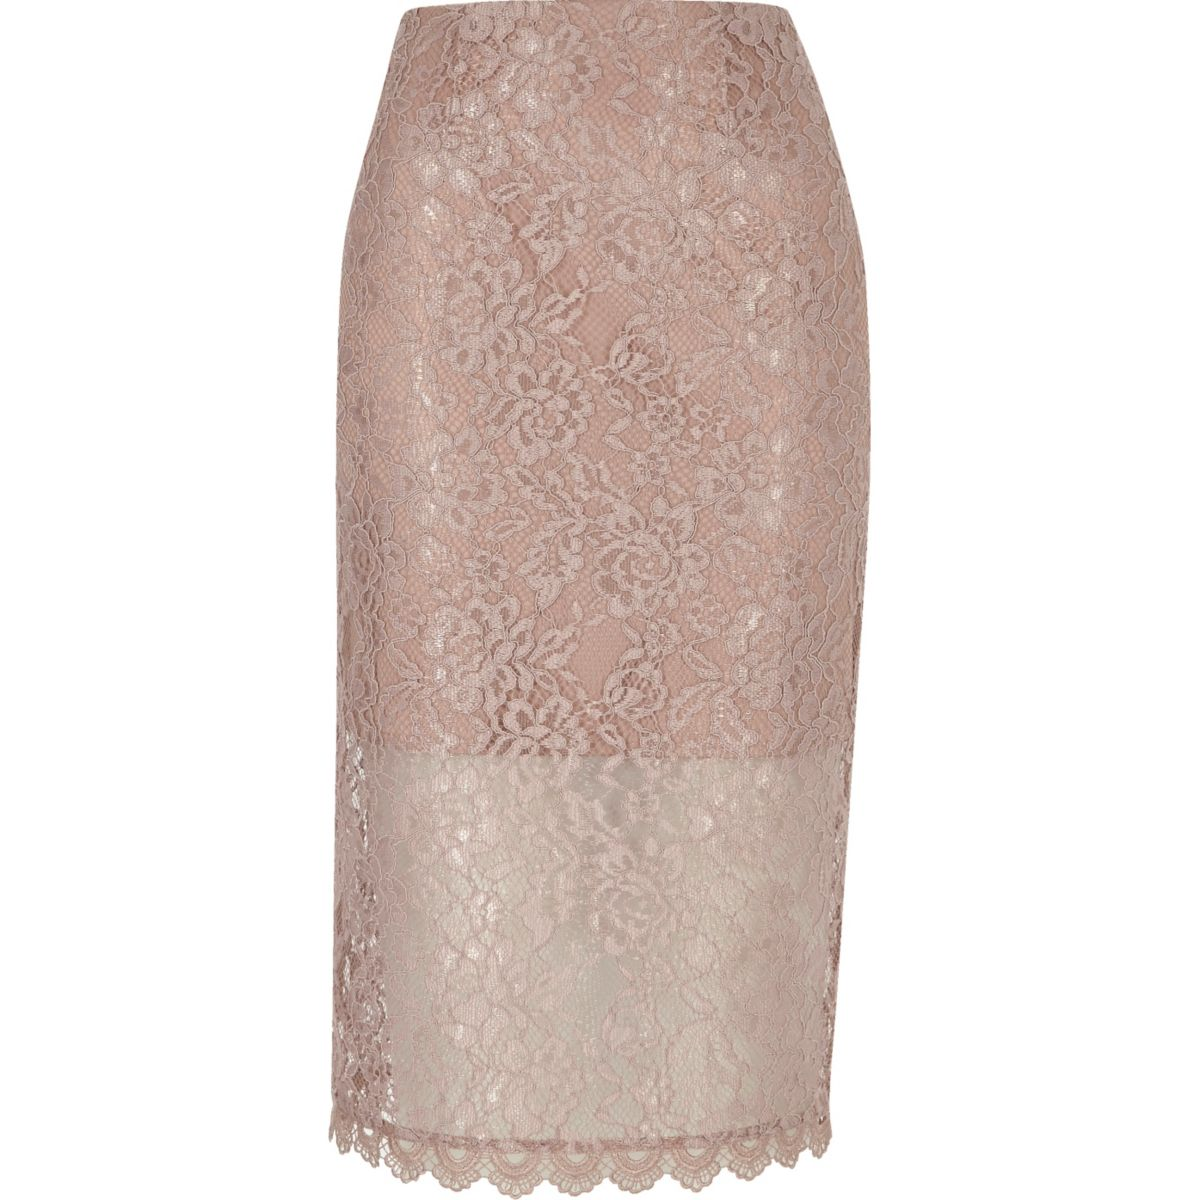 Pink lace pencil skirt